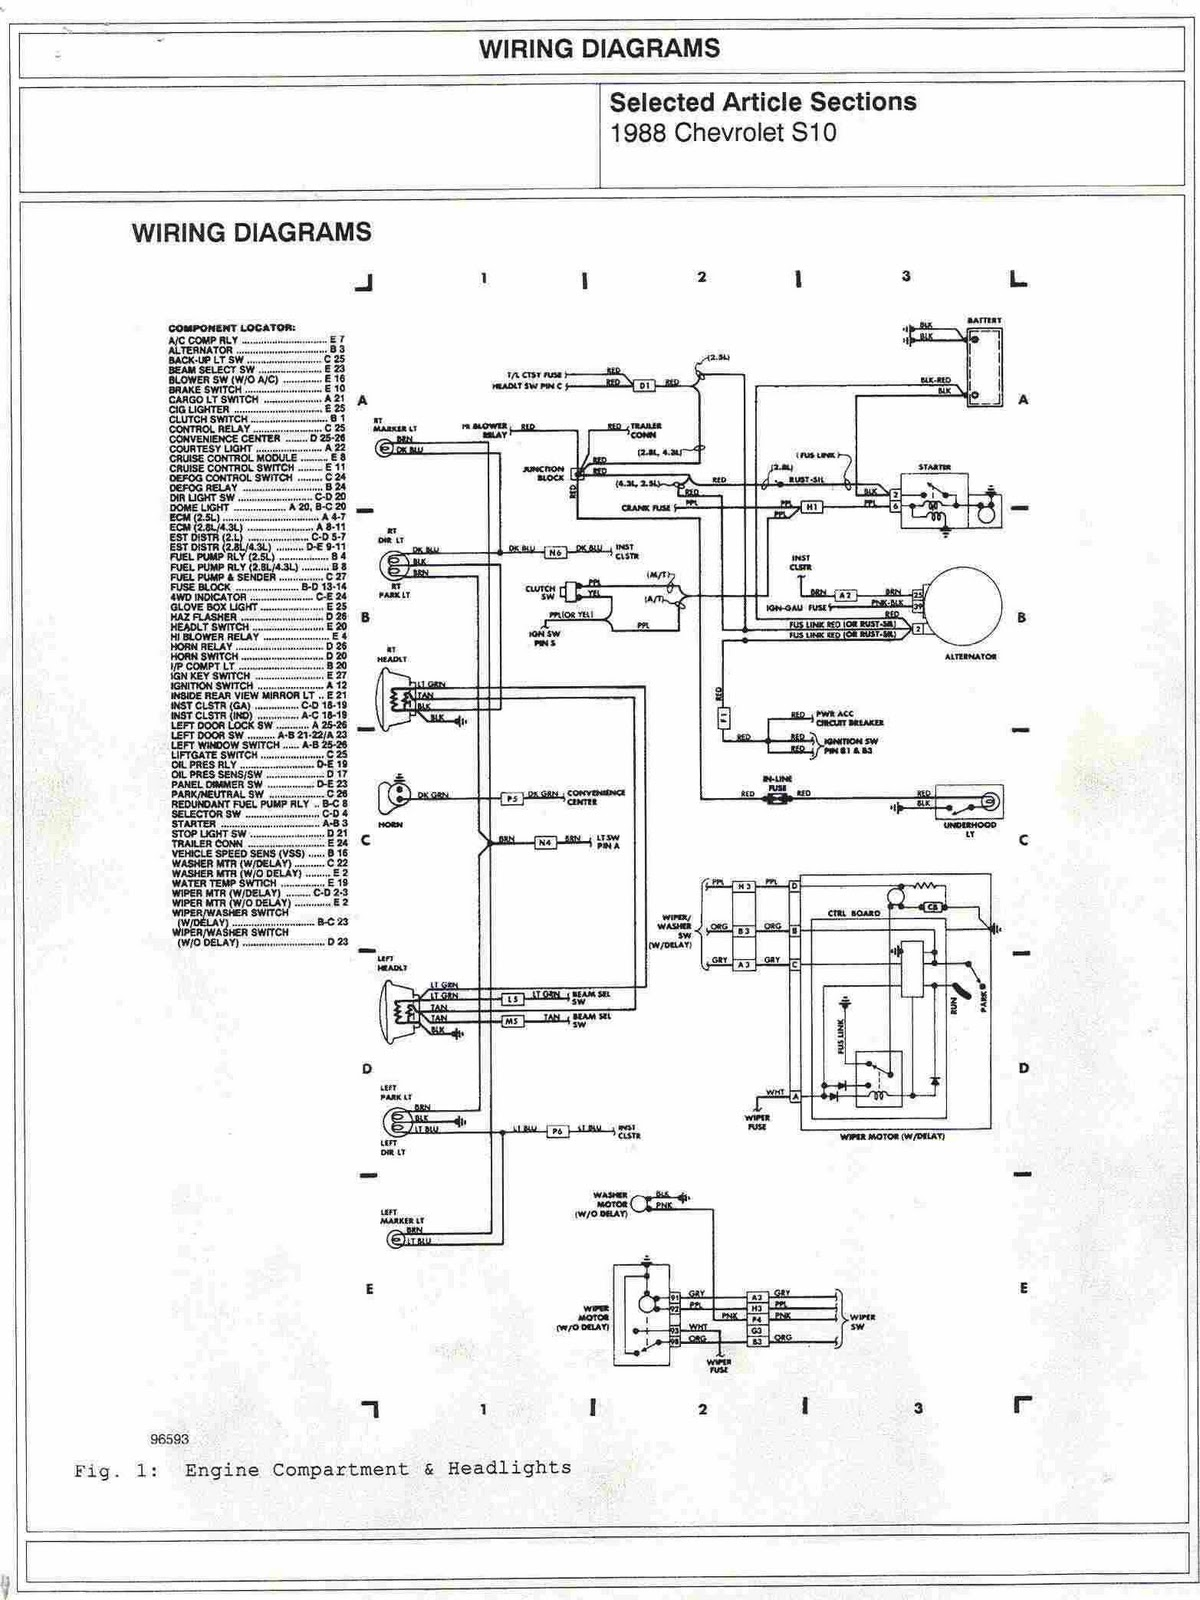 1988+Chevrolet+S10+Engine+Compartment+and+Headlights+Wiring+Diagrams 95 s10 wiring diagram 95 tahoe wiring diagram \u2022 wiring diagrams 2008 Ranger Wiring Diagram at bakdesigns.co